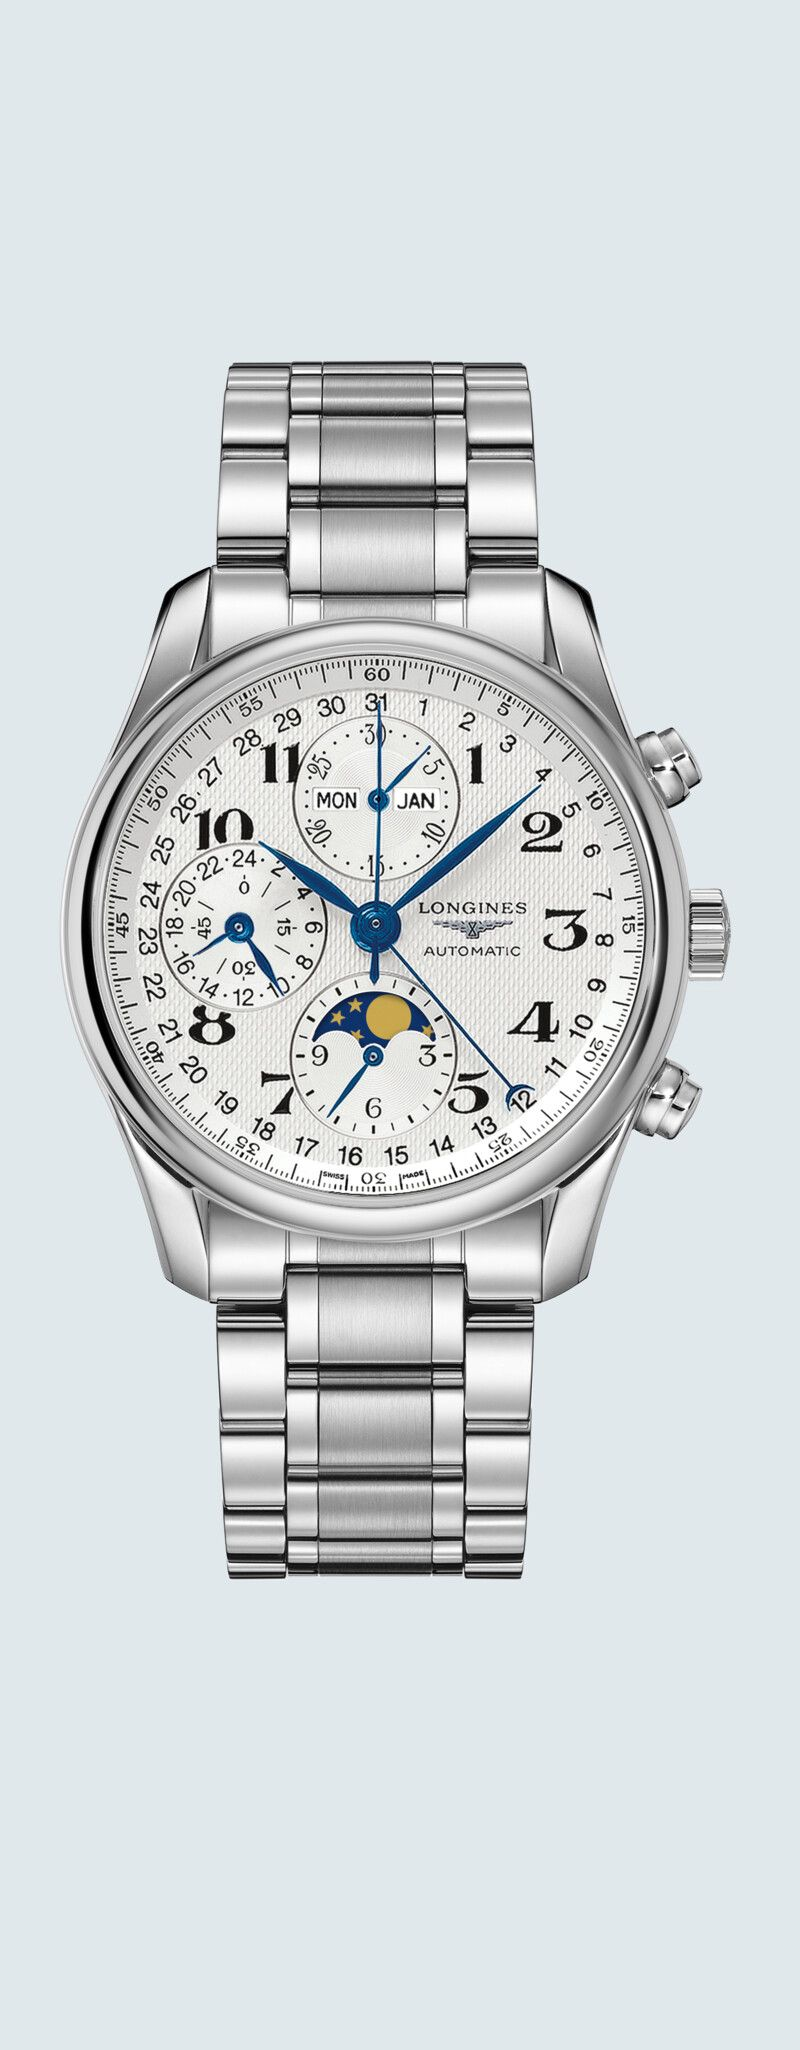 """40.00 mm Stainless steel case with Silver """"barleycorn"""" dial and Stainless steel strap - case zoom v"""